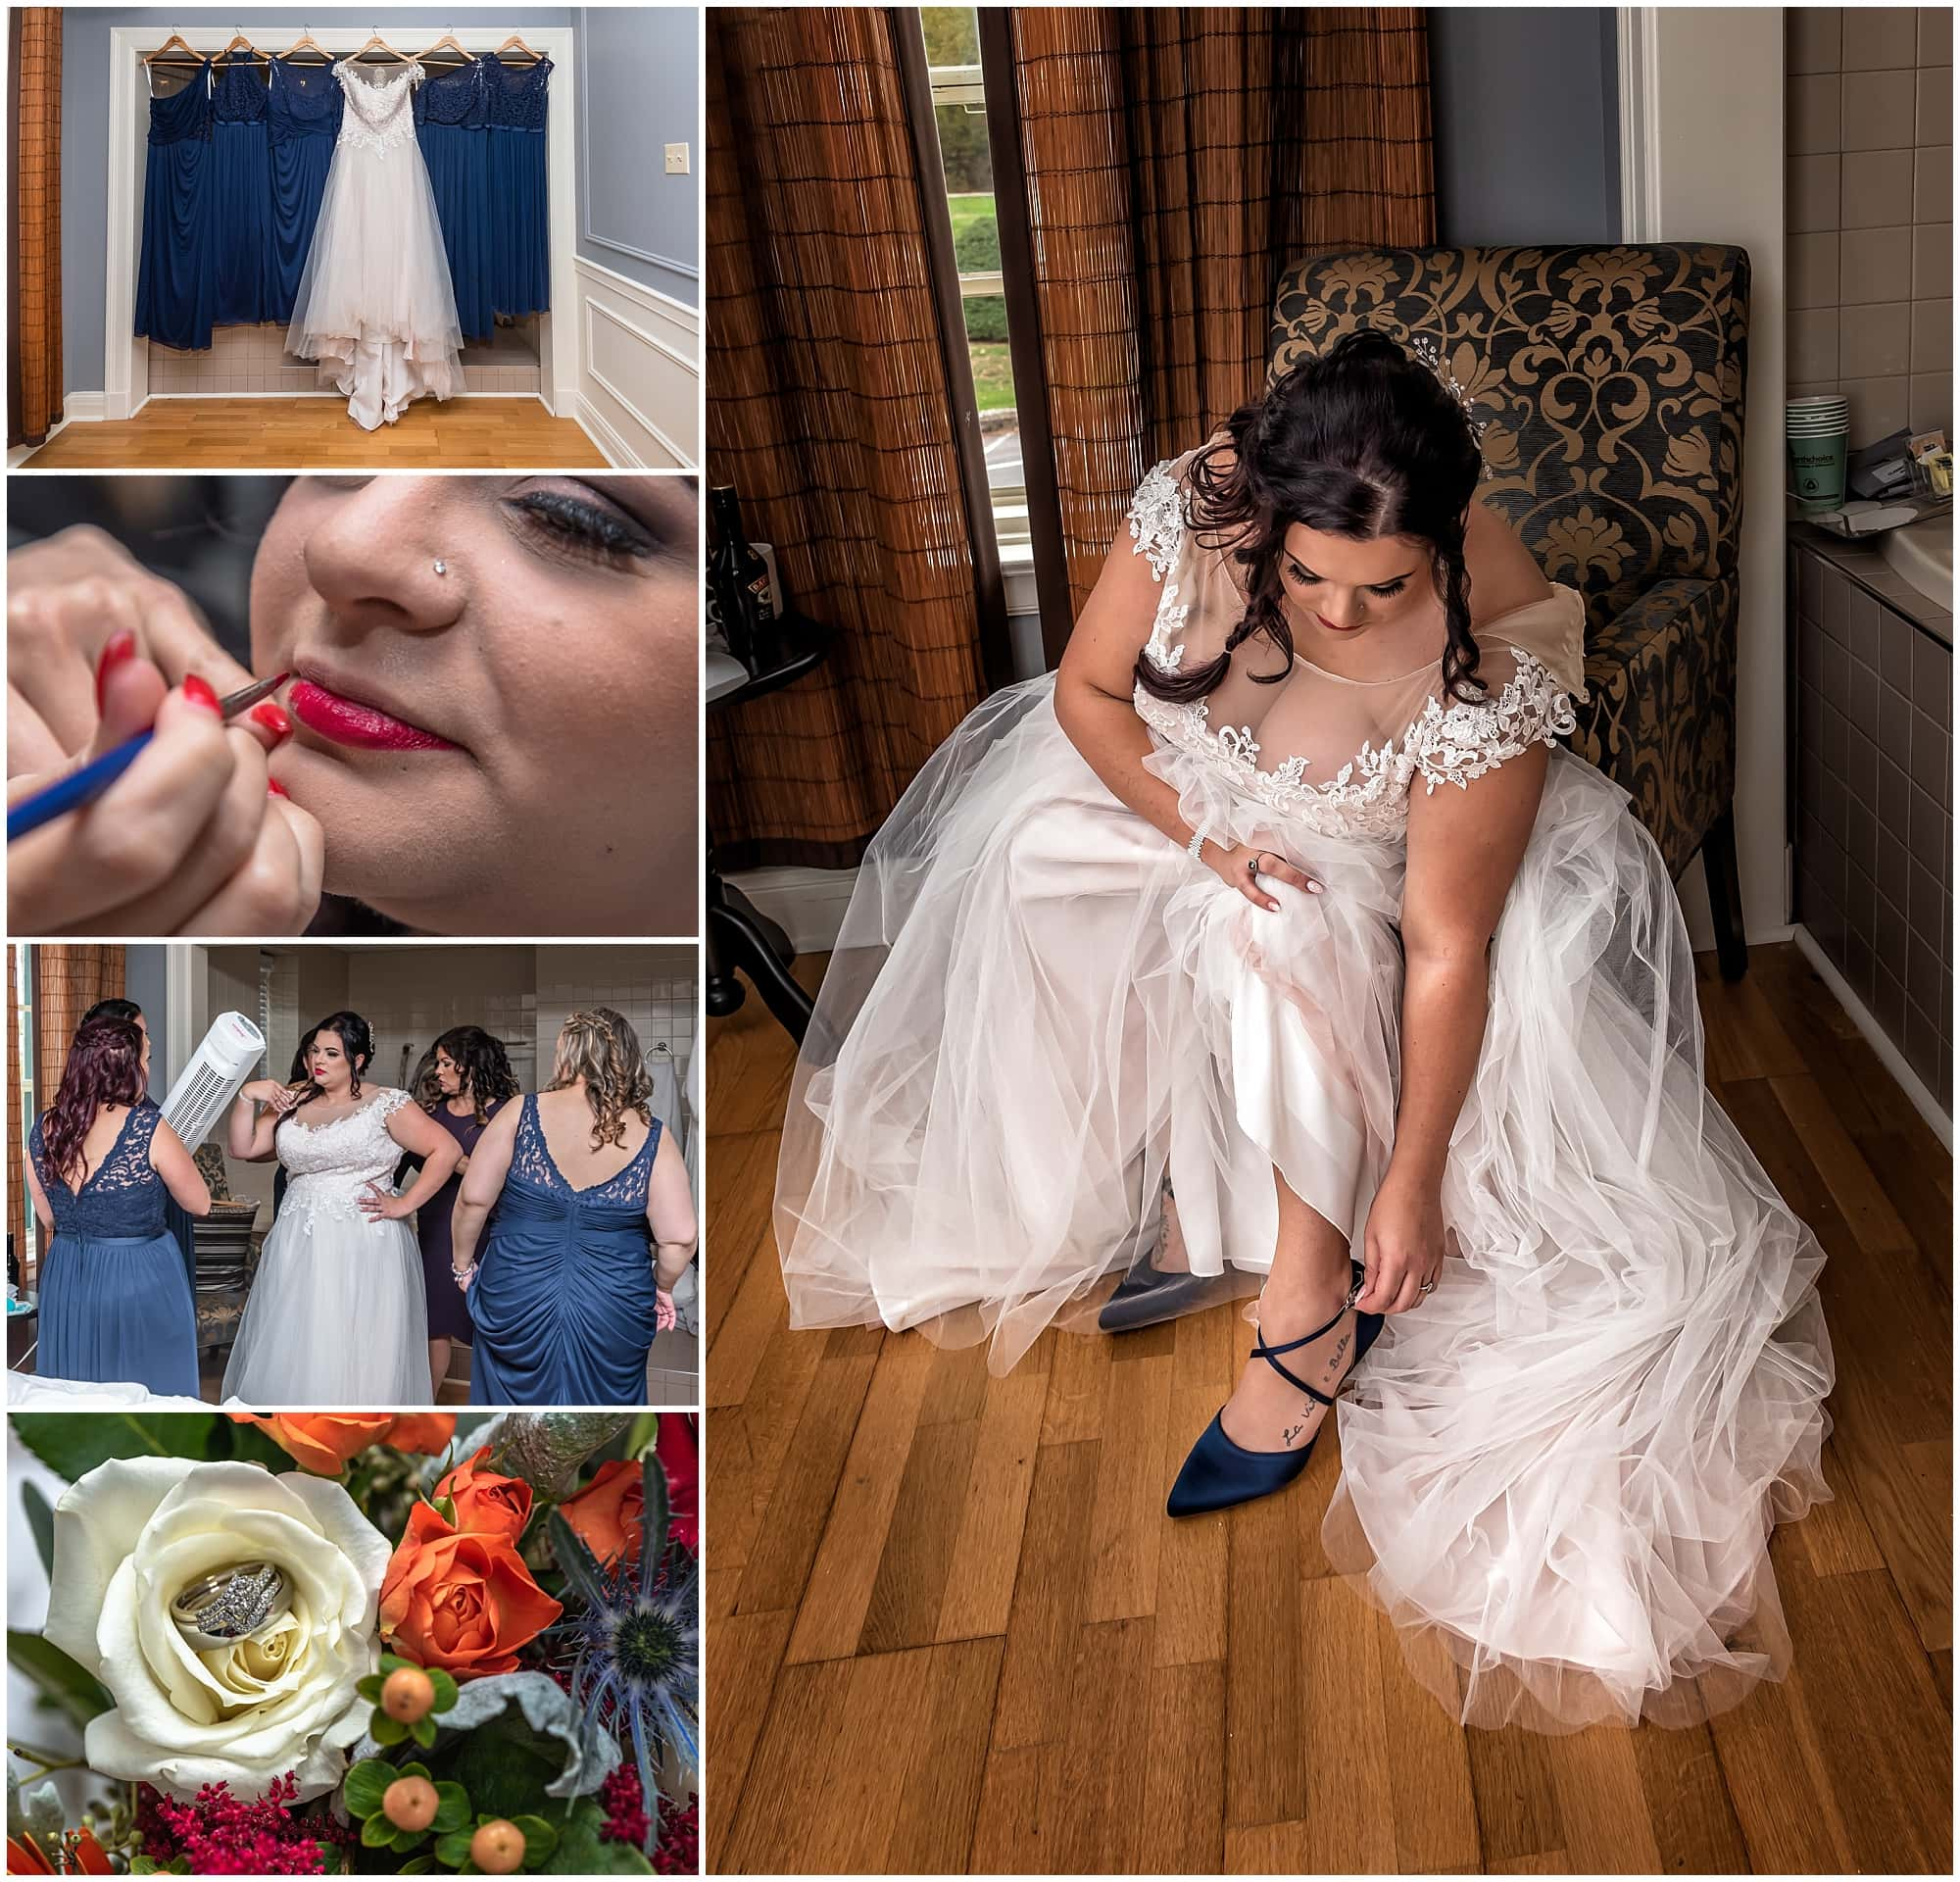 The bridal prep prior to the wedding ceremony of the bride getting ready at Digby Pines Resort in Nova Scotia.